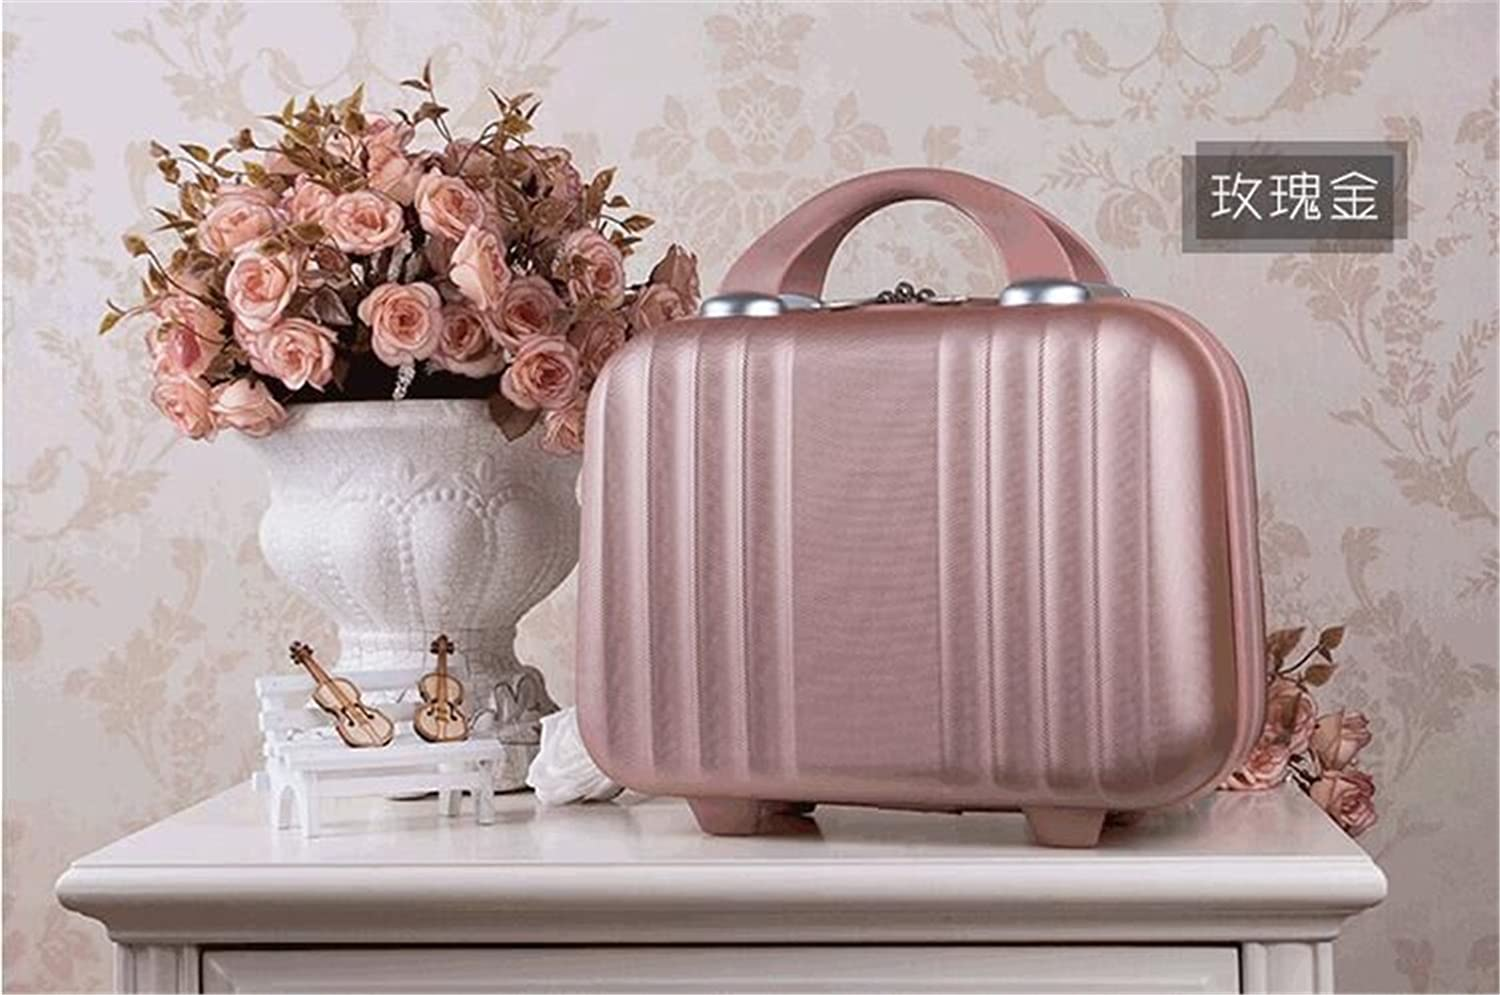 Bilateral Stripe Typ ABS Polychrome Prin Travel Mini New product For Luggage New mail order